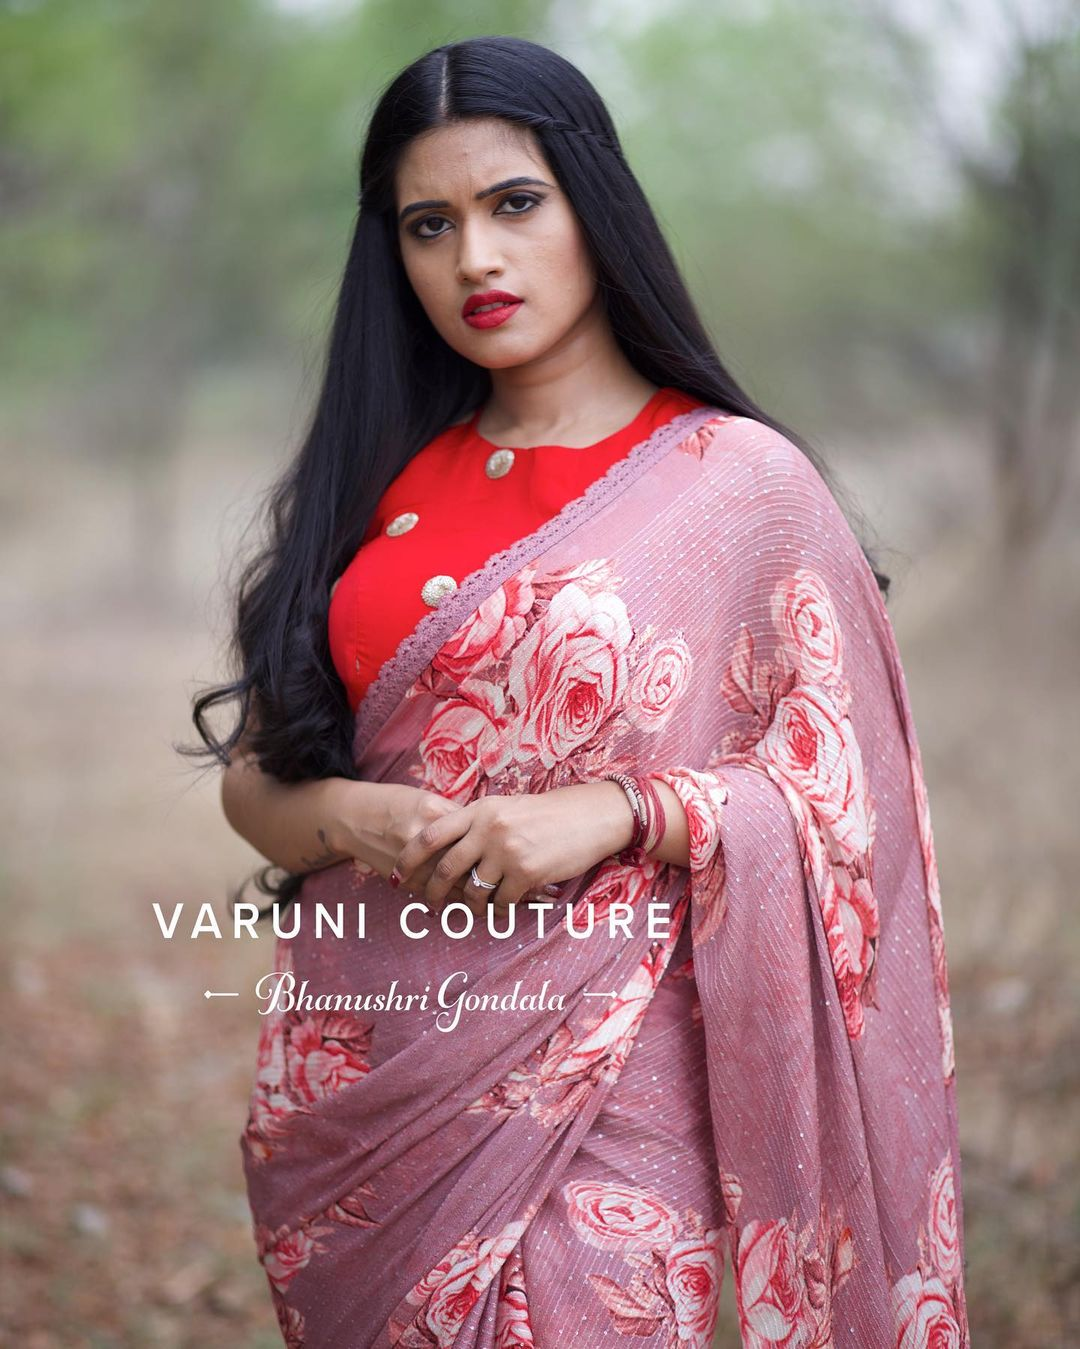 Stunning lavender  color floral saree and red color sleeveless blouse. Price 6999 INR